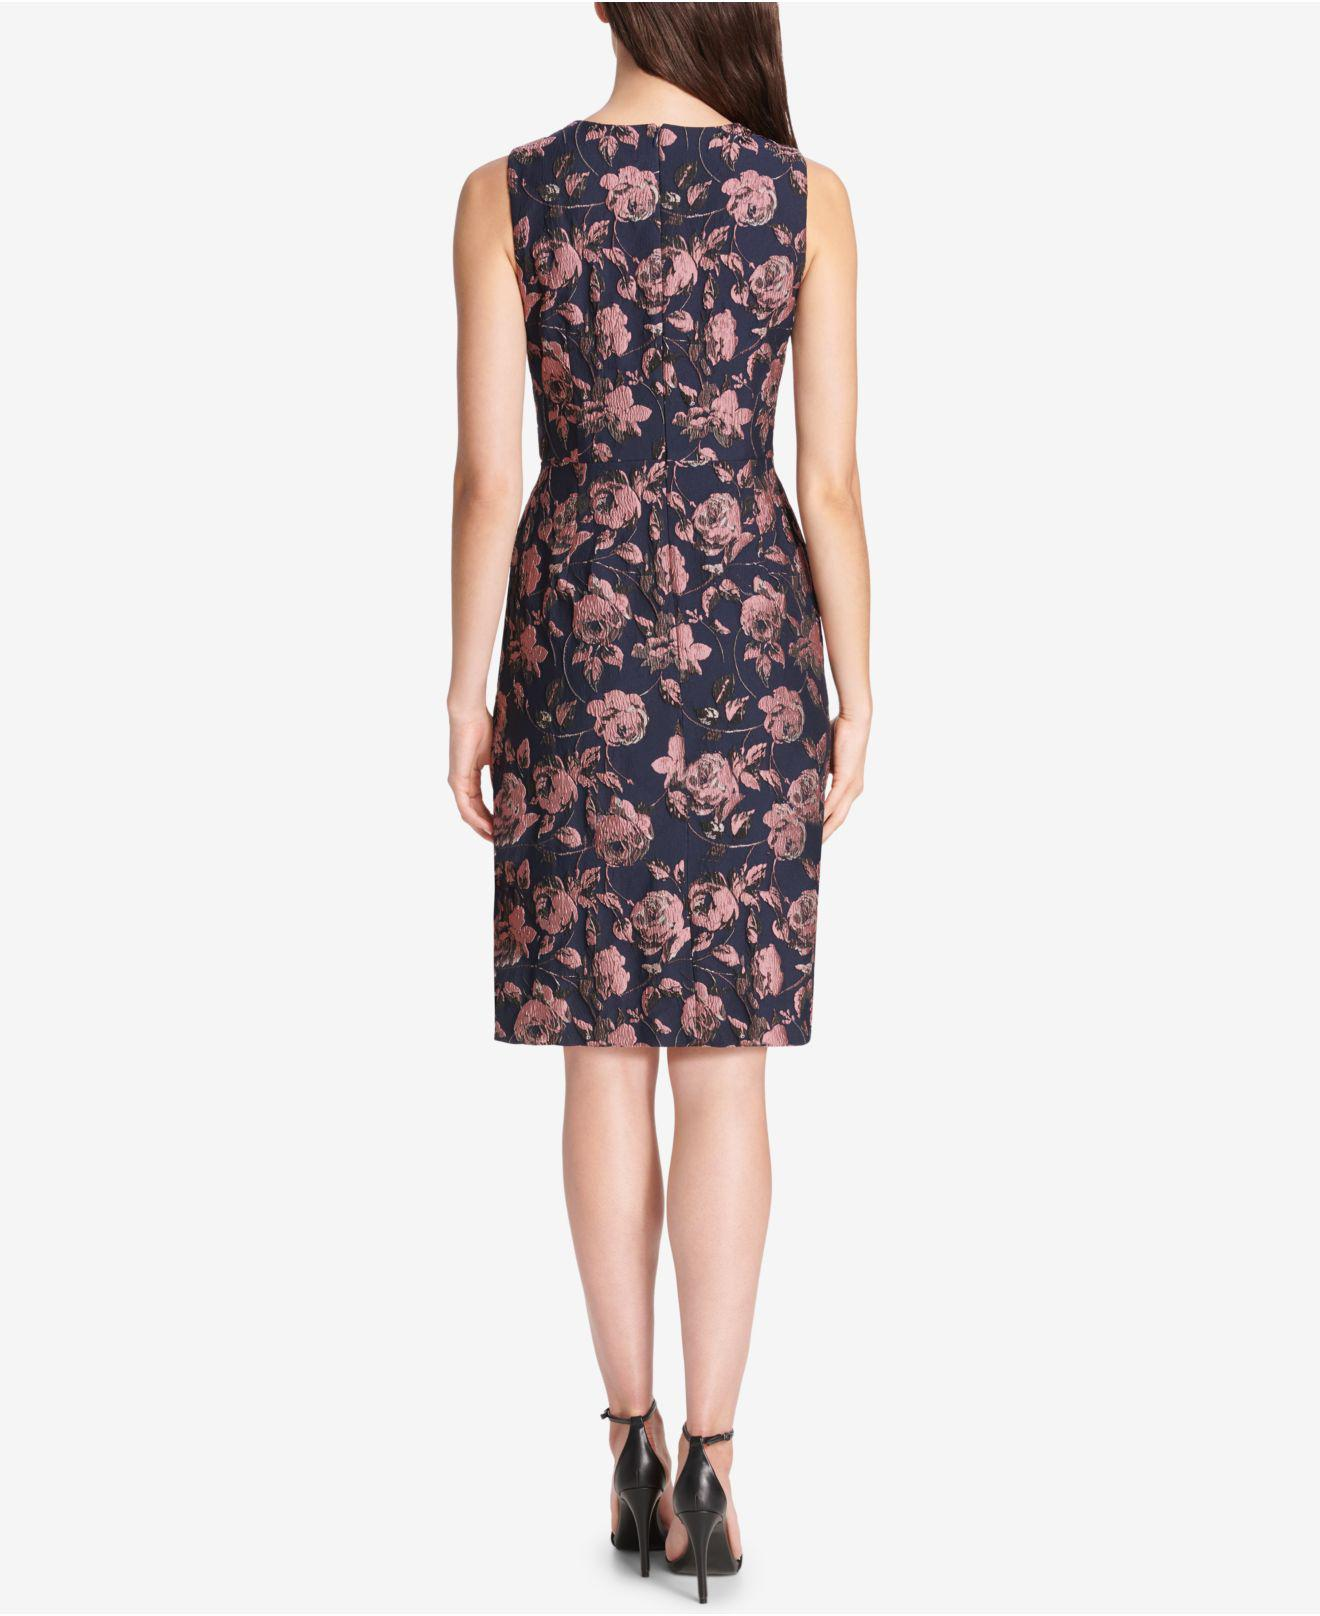 4937cf60949 Lyst - Vince Camuto Floral Ruffled Jacquard A-line Dress in Blue